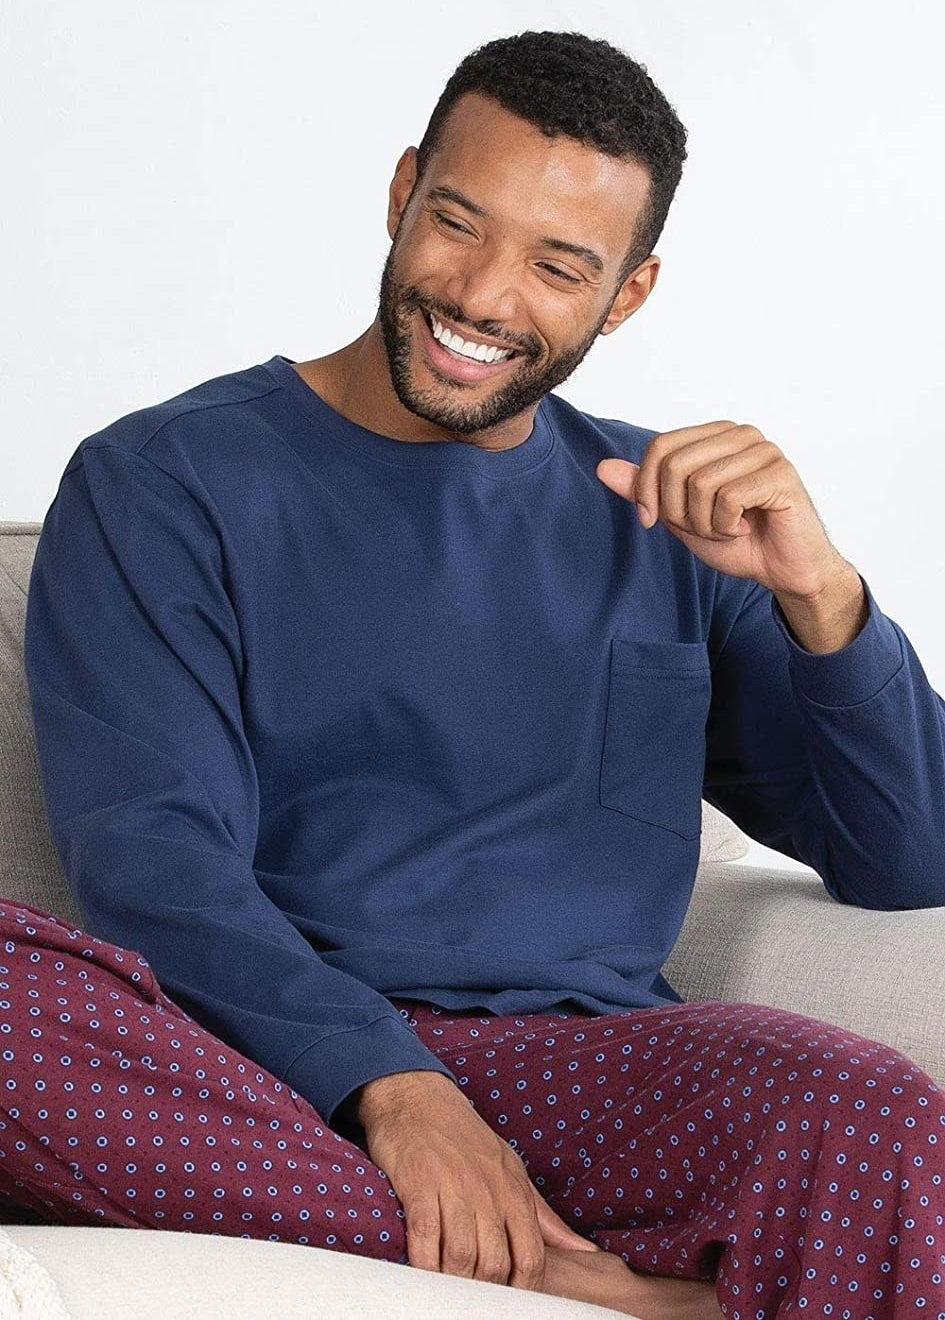 A person smiling in the pyjama set